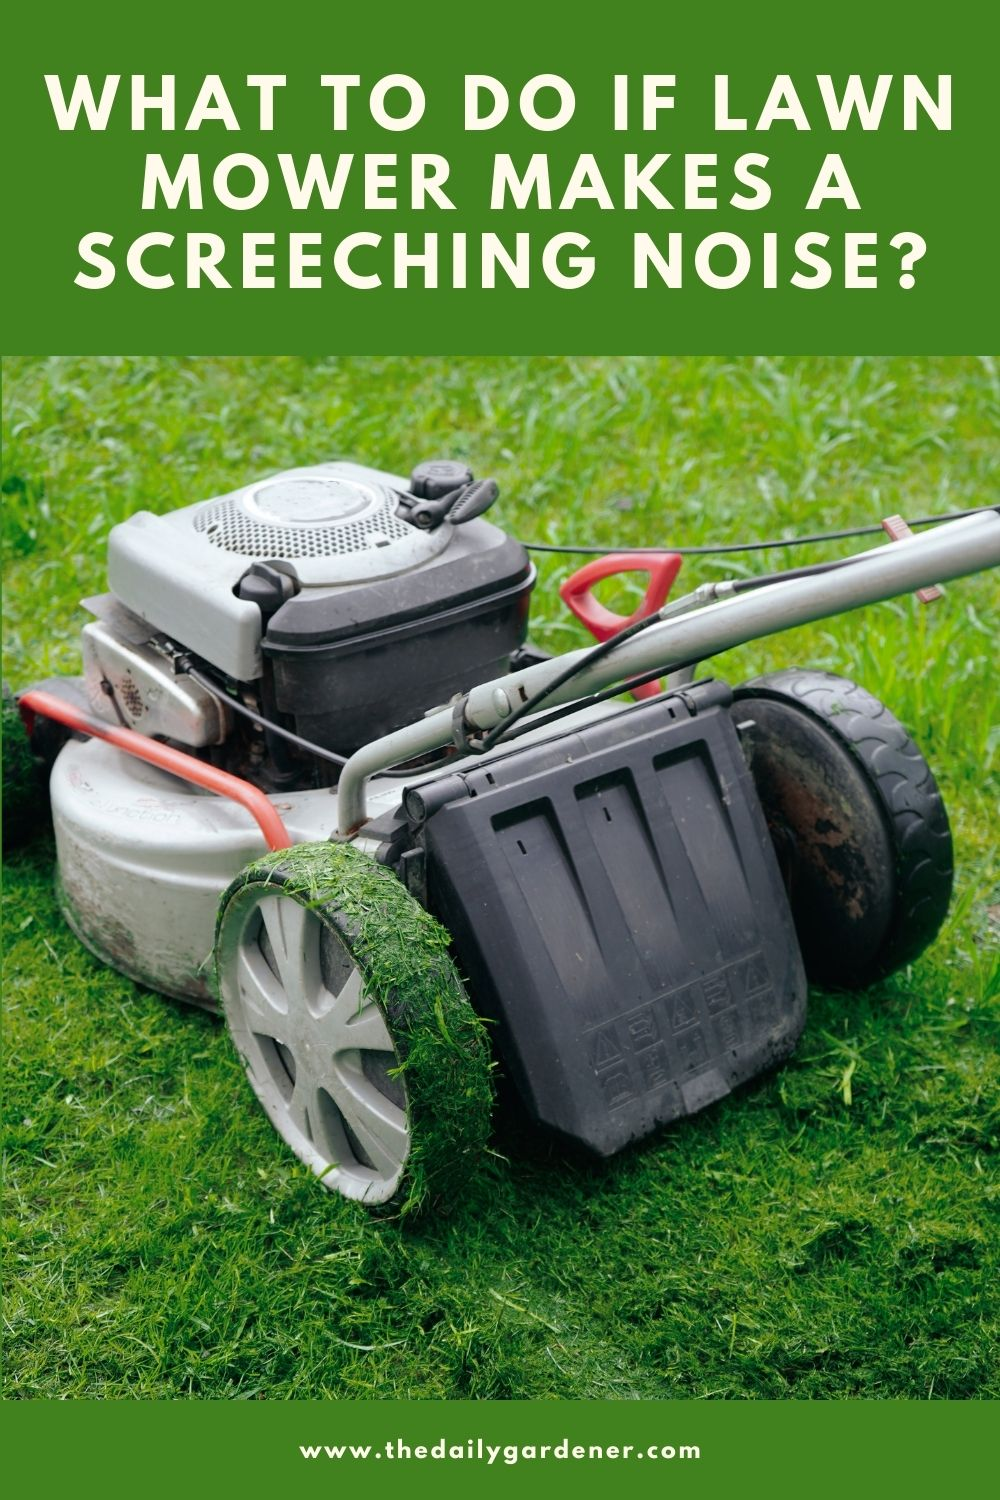 What to do if Lawn Mower Makes a Screeching Noise 2